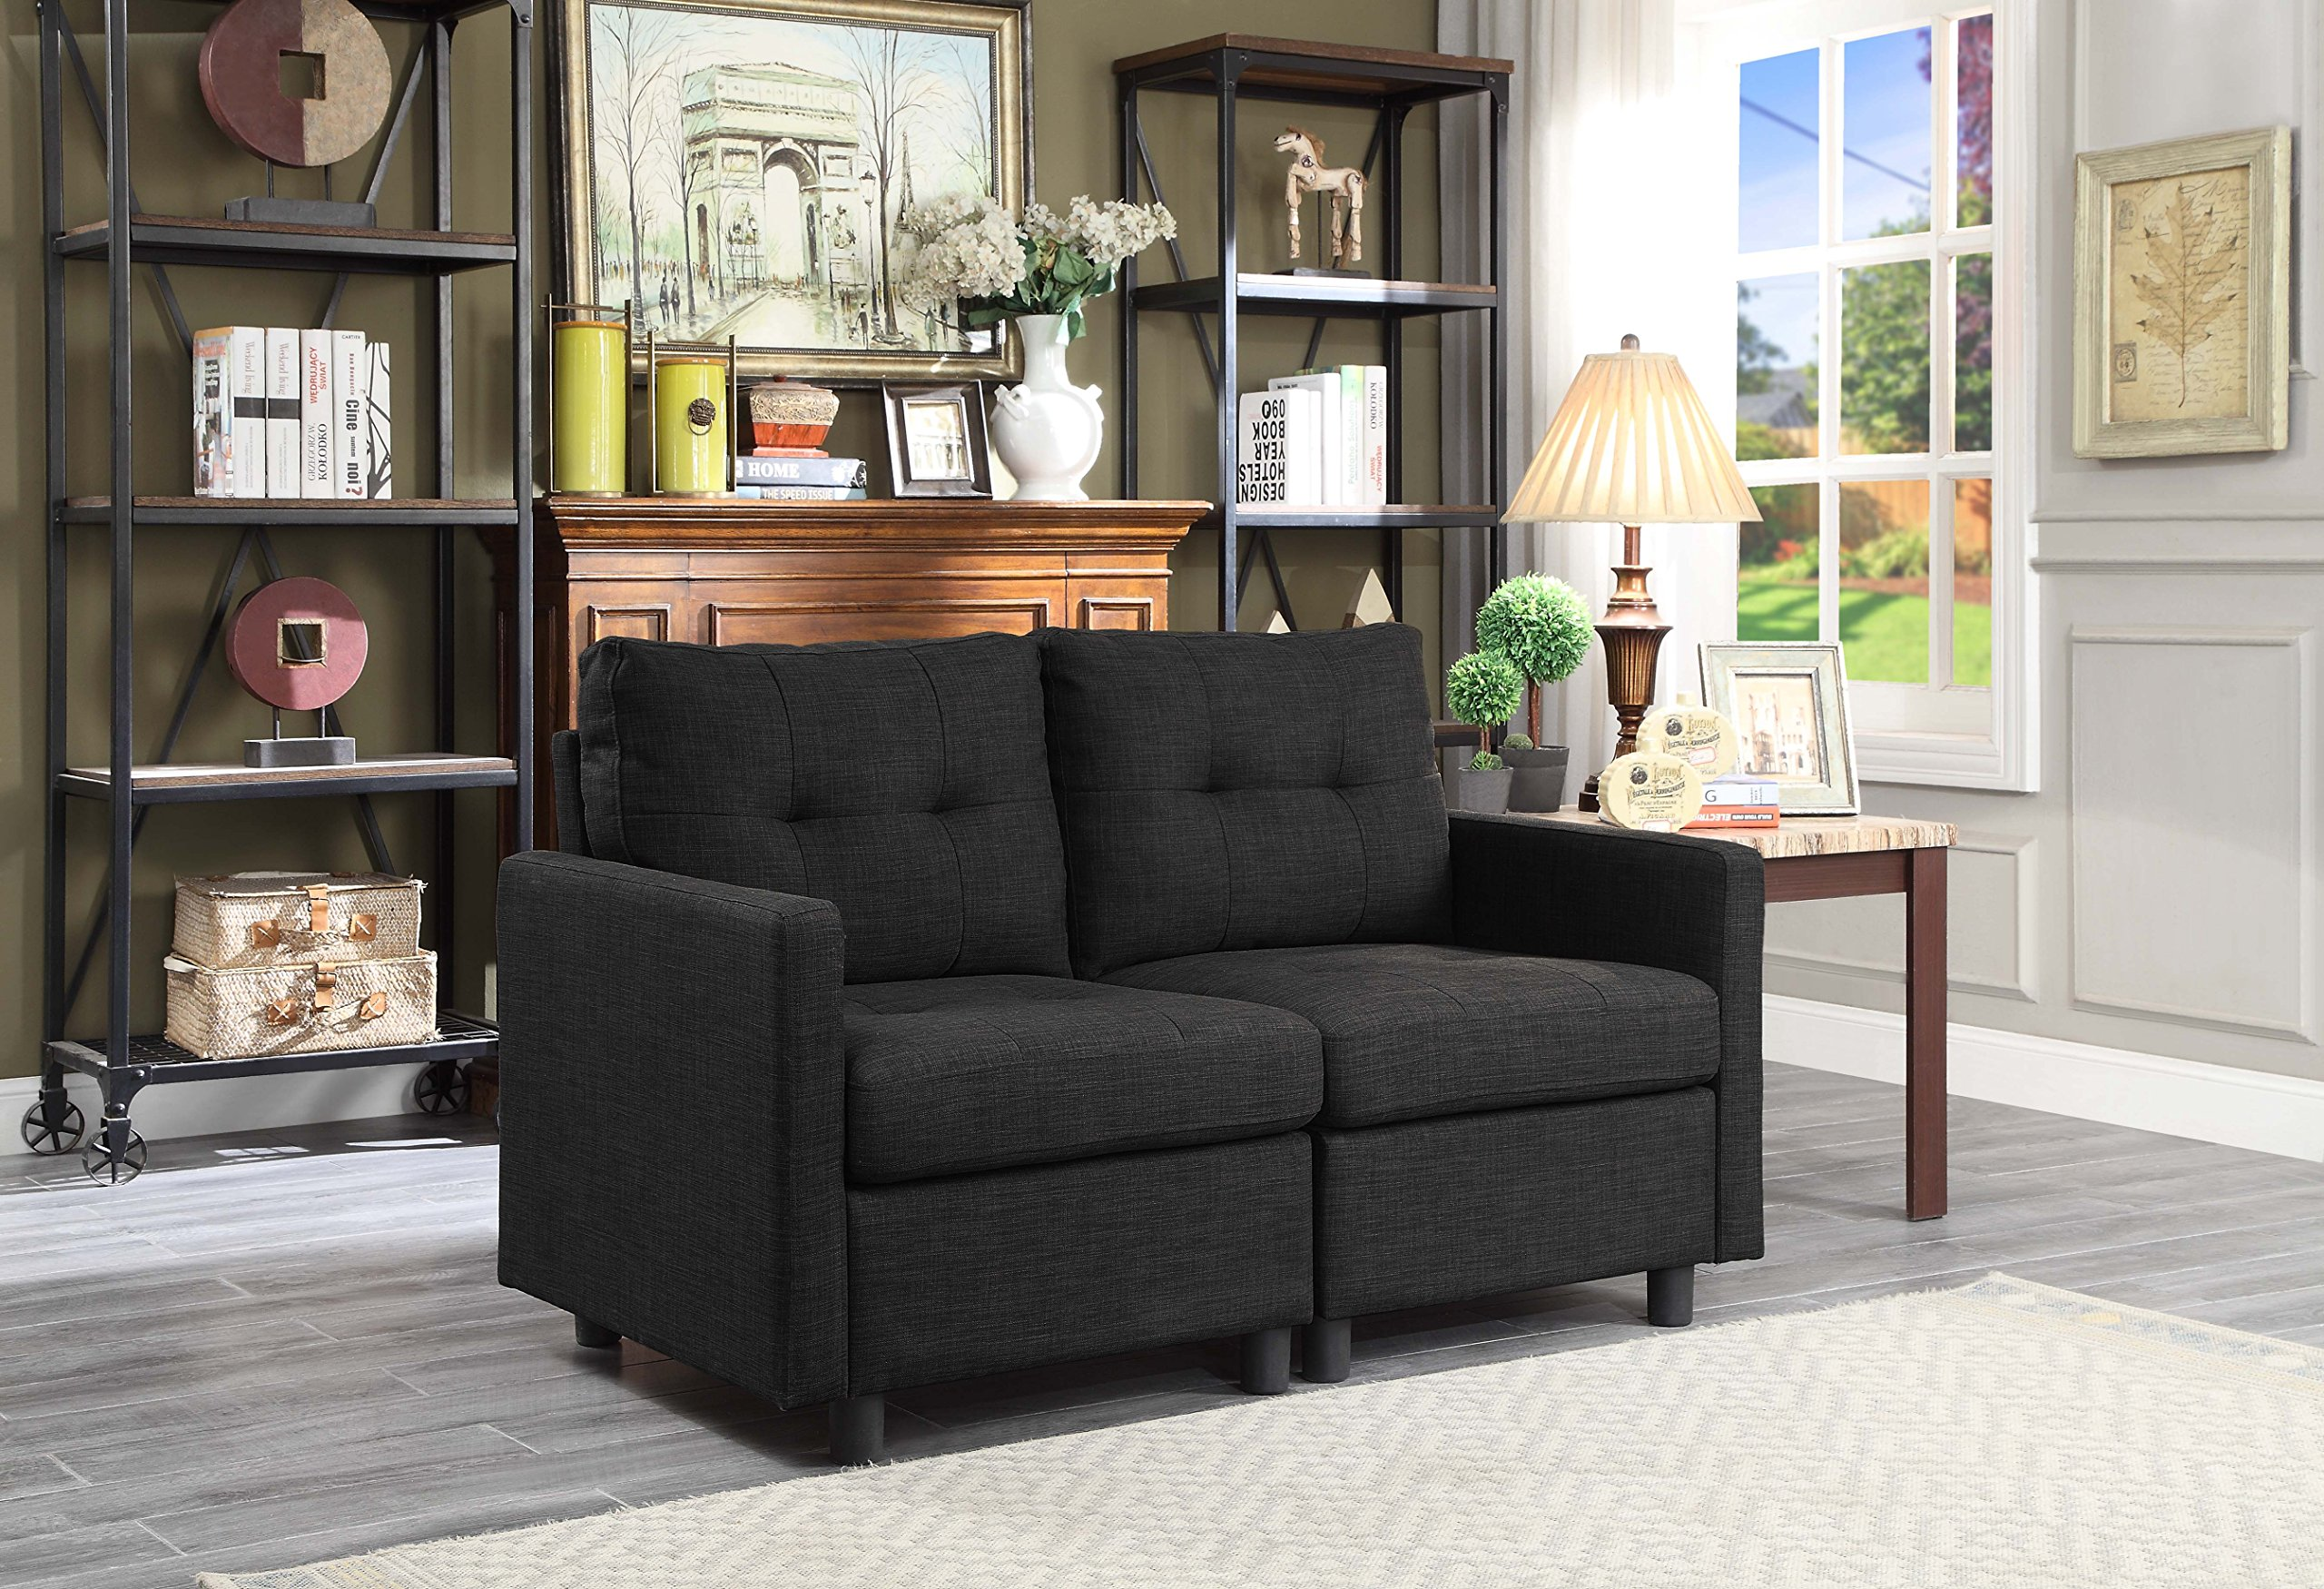 DAZONE Modular Sectional Sofa Assemble 2-Piece Modular Sectional Sofas Bundle Set Cushions, Easy to Assemble Left & Right Arm Chair Loveseat Living Room Sofas Charcoal Black by DAZONE